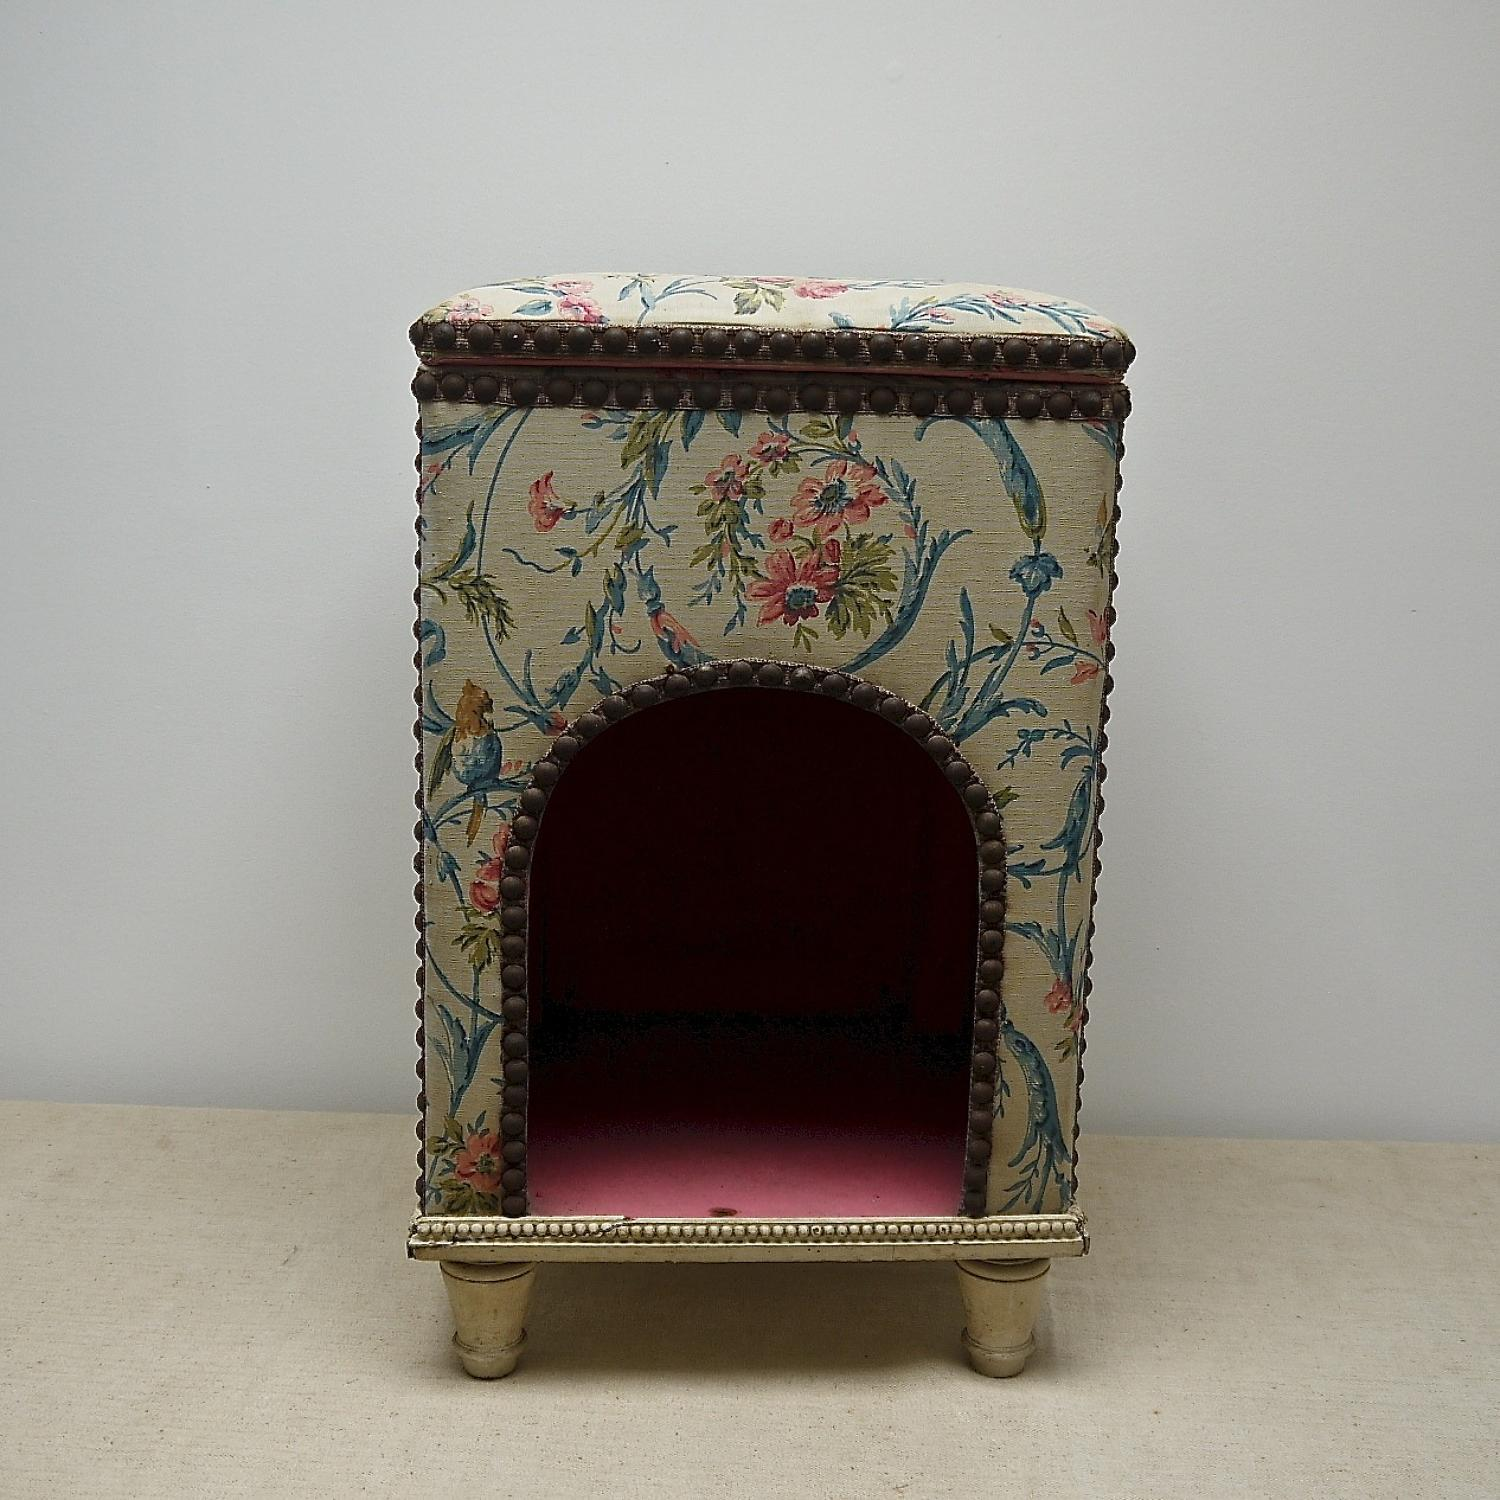 Late 19th century French dog's bed